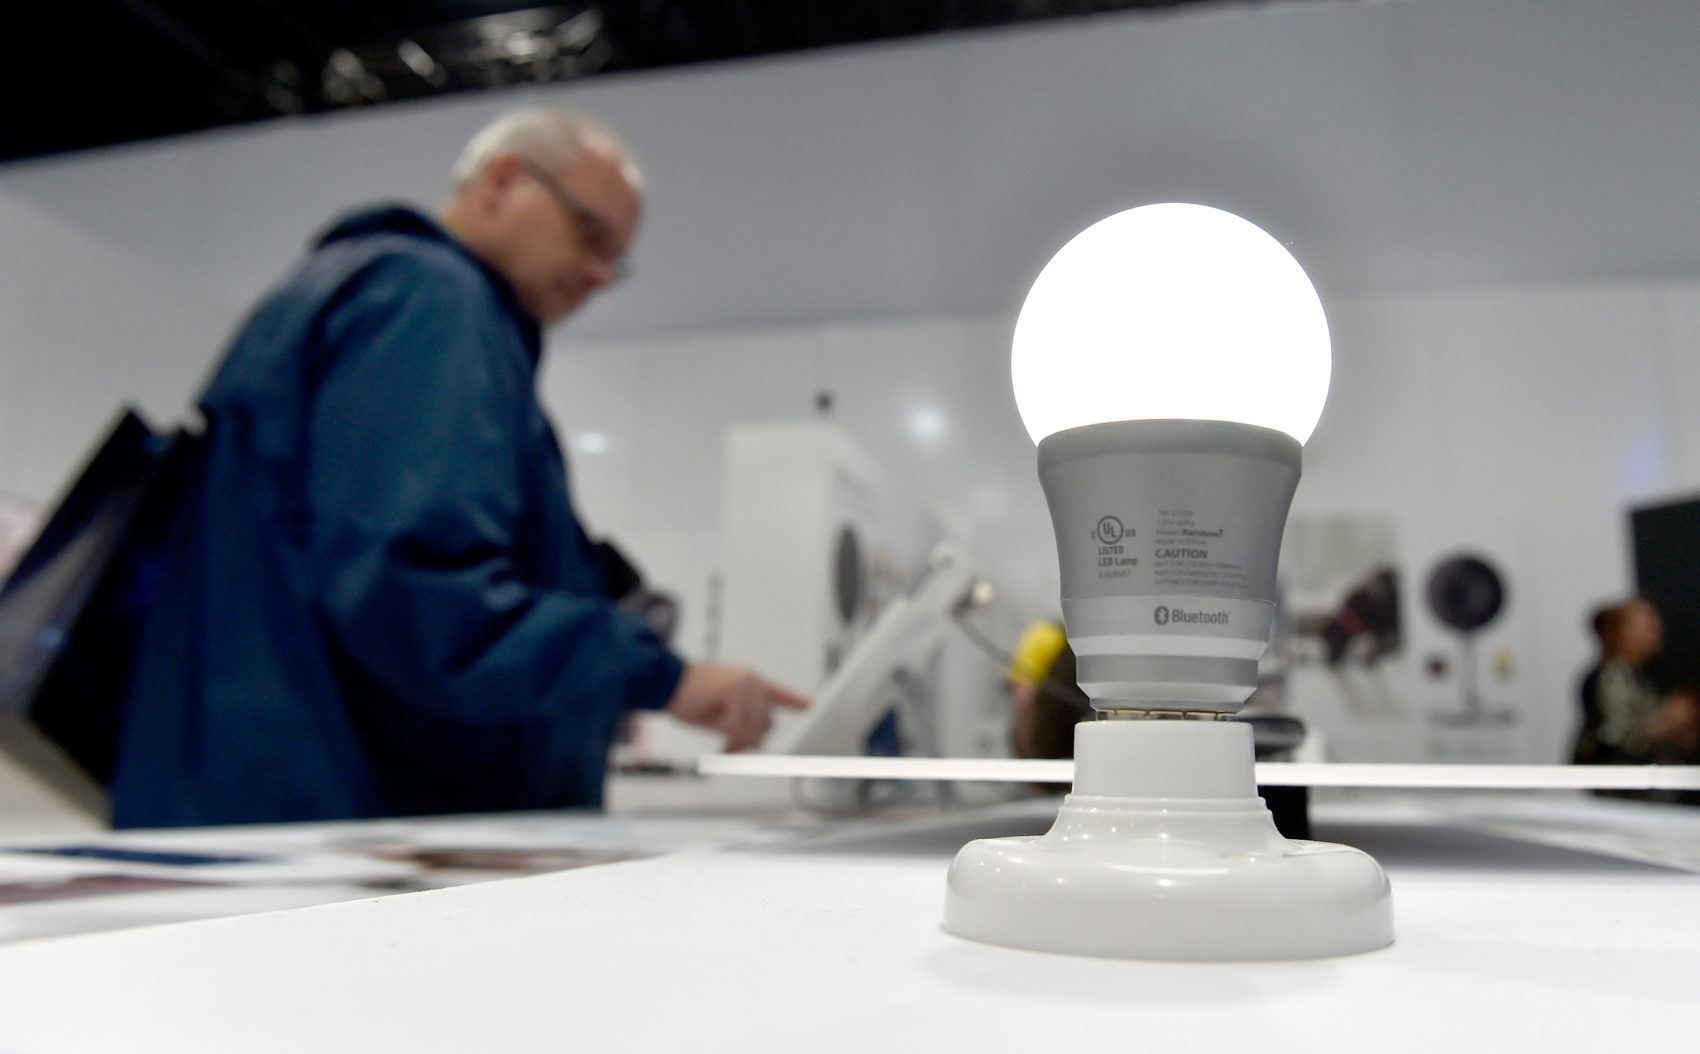 A Rainbow7 Bluetooth smart-enabled lightbulb is illuminated at CES 2016 at the Las Vegas Convention Center on January 6, 2016 in Las Vegas. (David Becker/Getty Images)